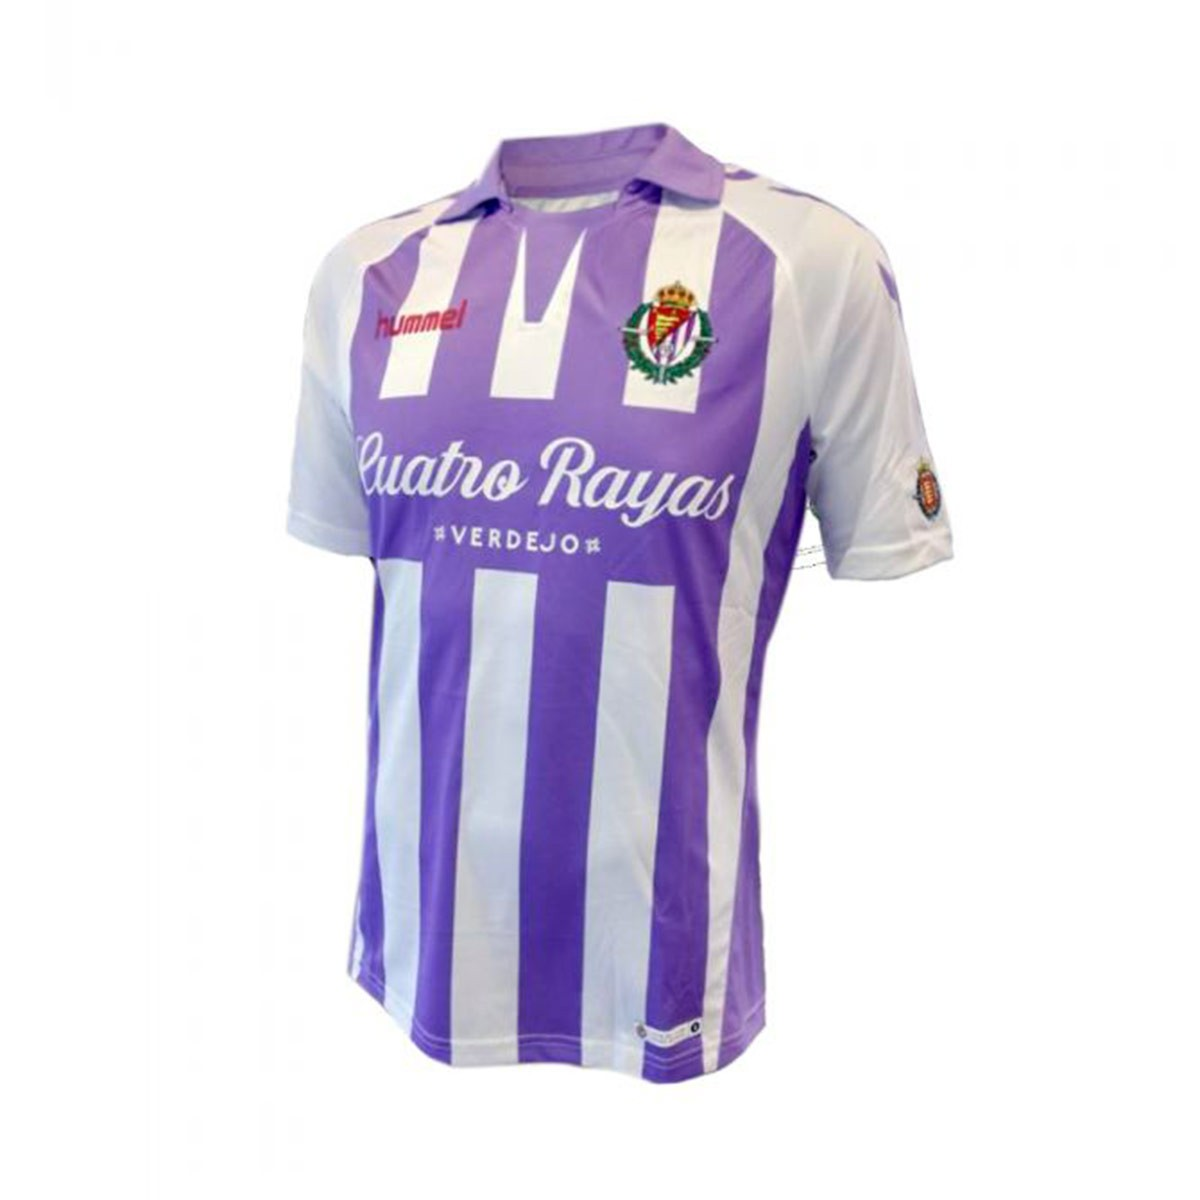 66d77bfd0 Jersey Hummel Real Valladolid CF 2018-2019 Home Violet-White ...